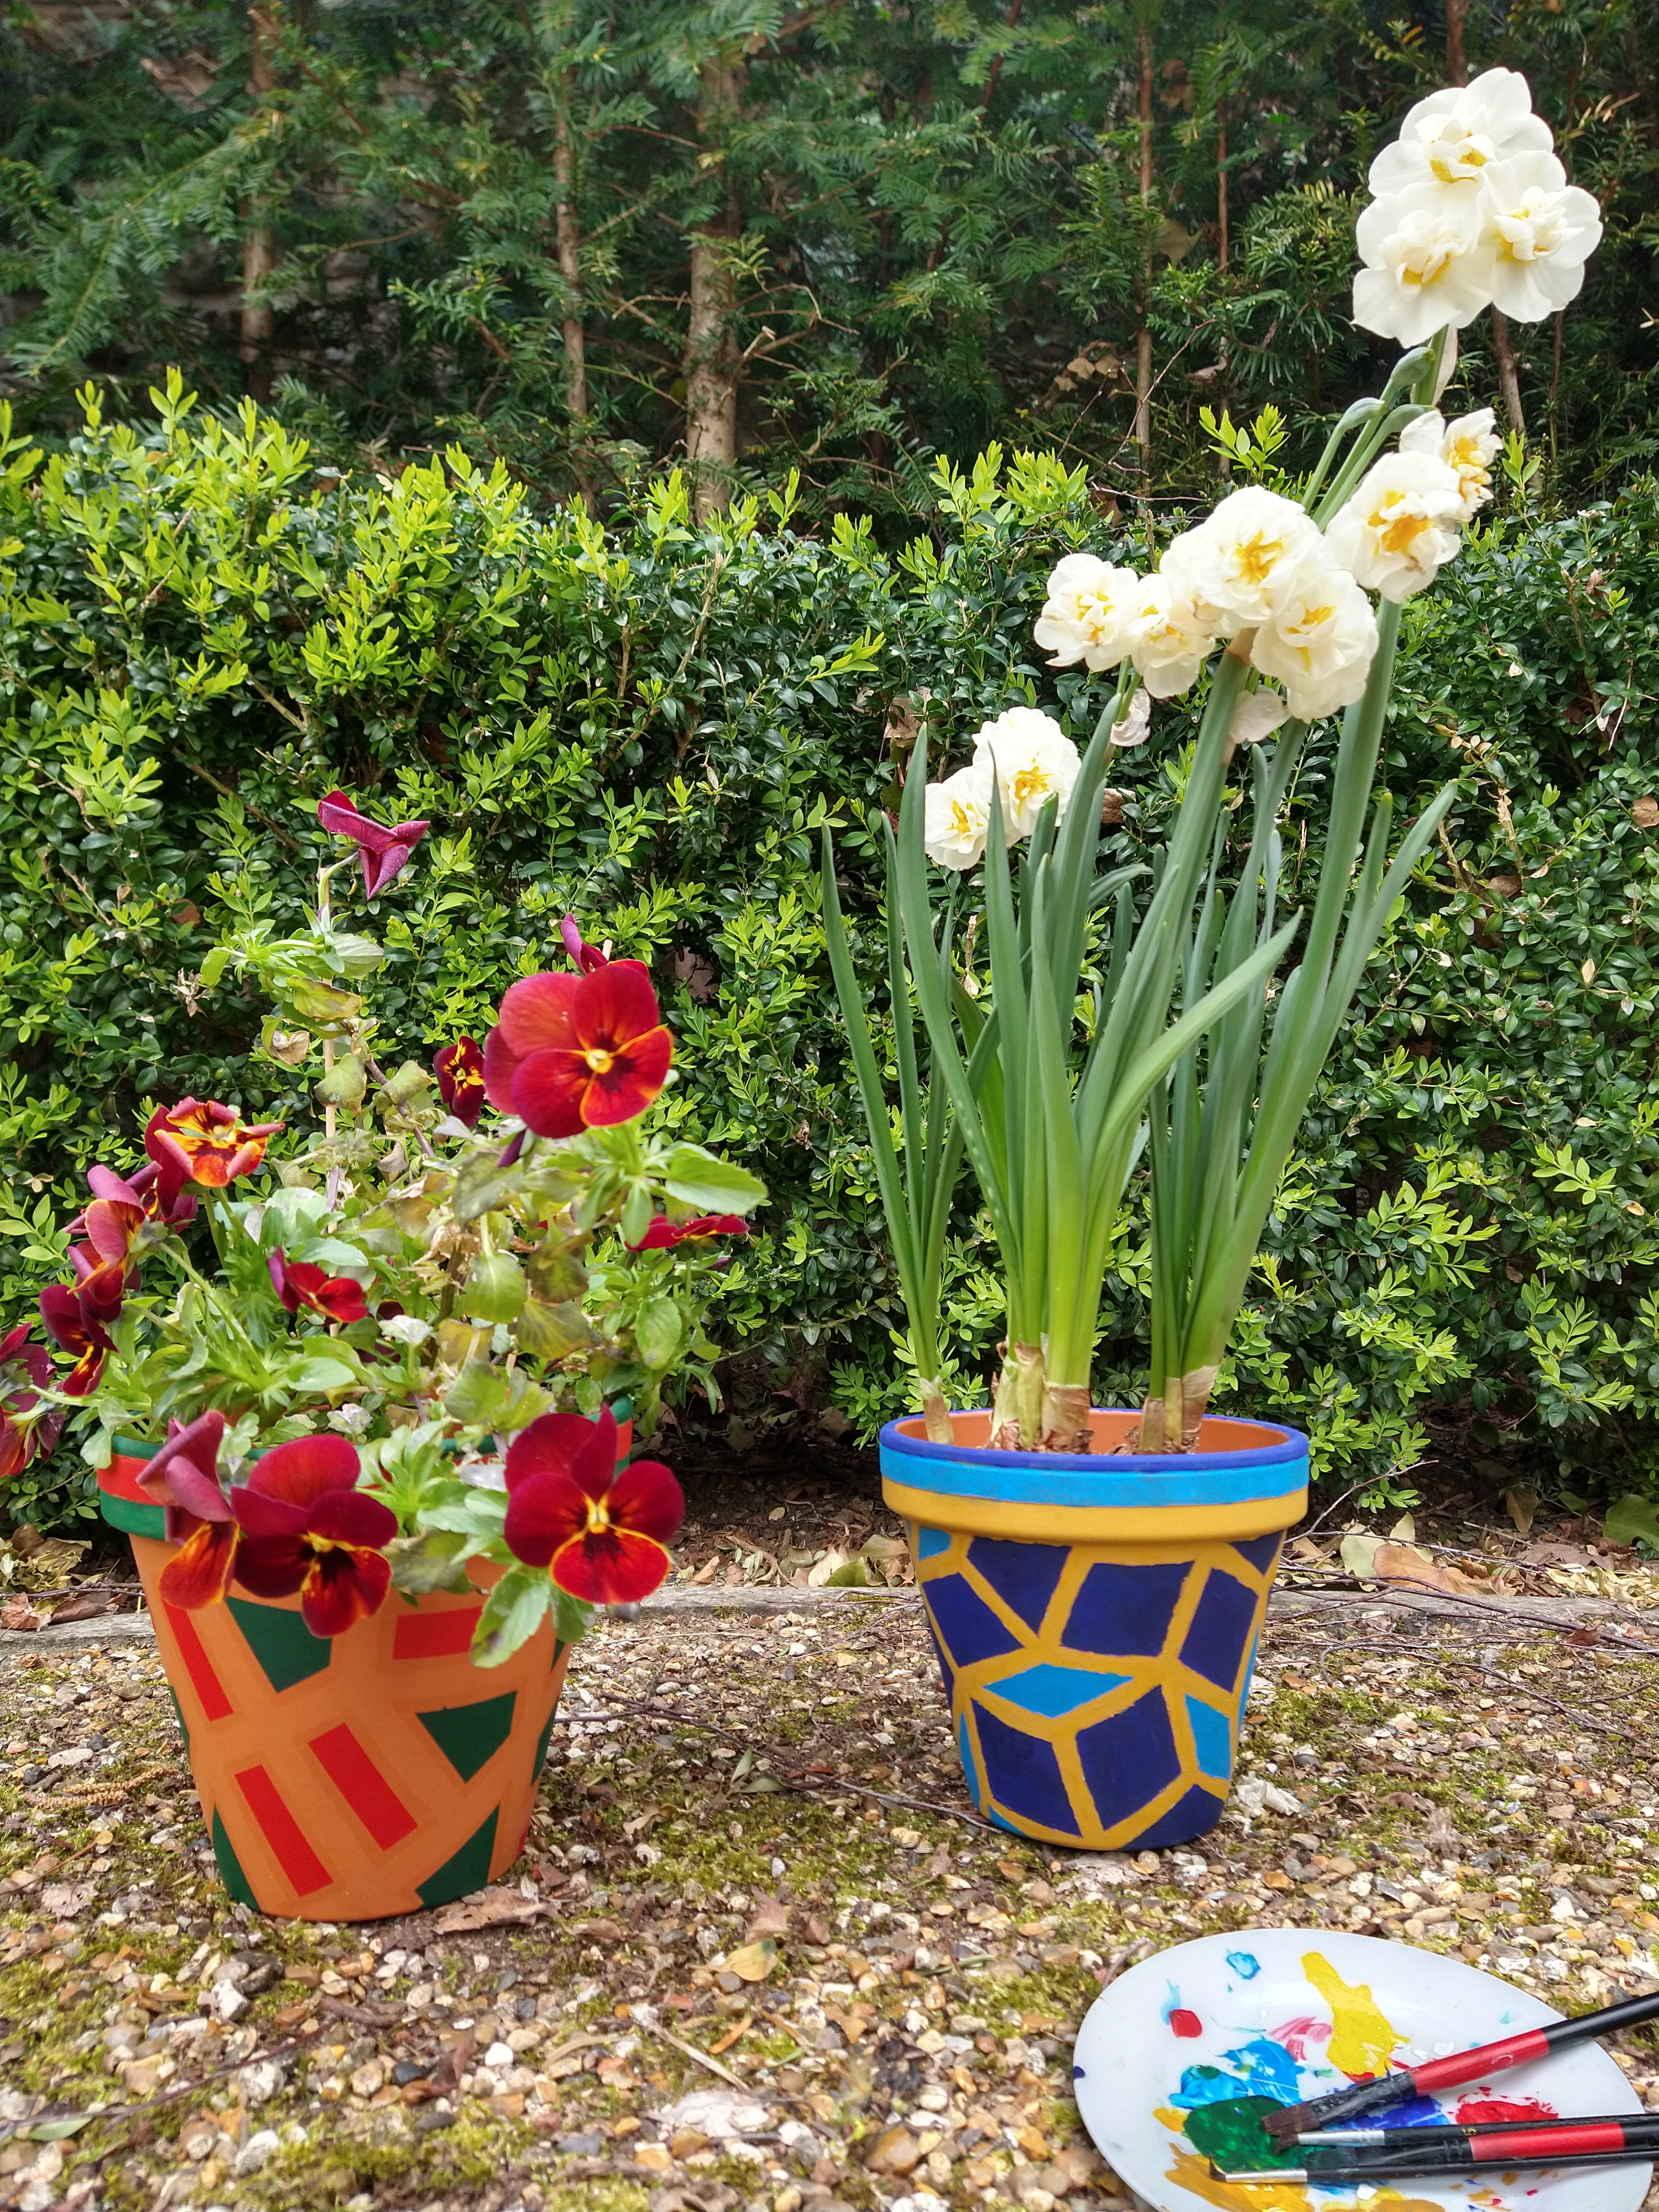 Flower pots painted in bright colours with aperiodic tiling patterns.